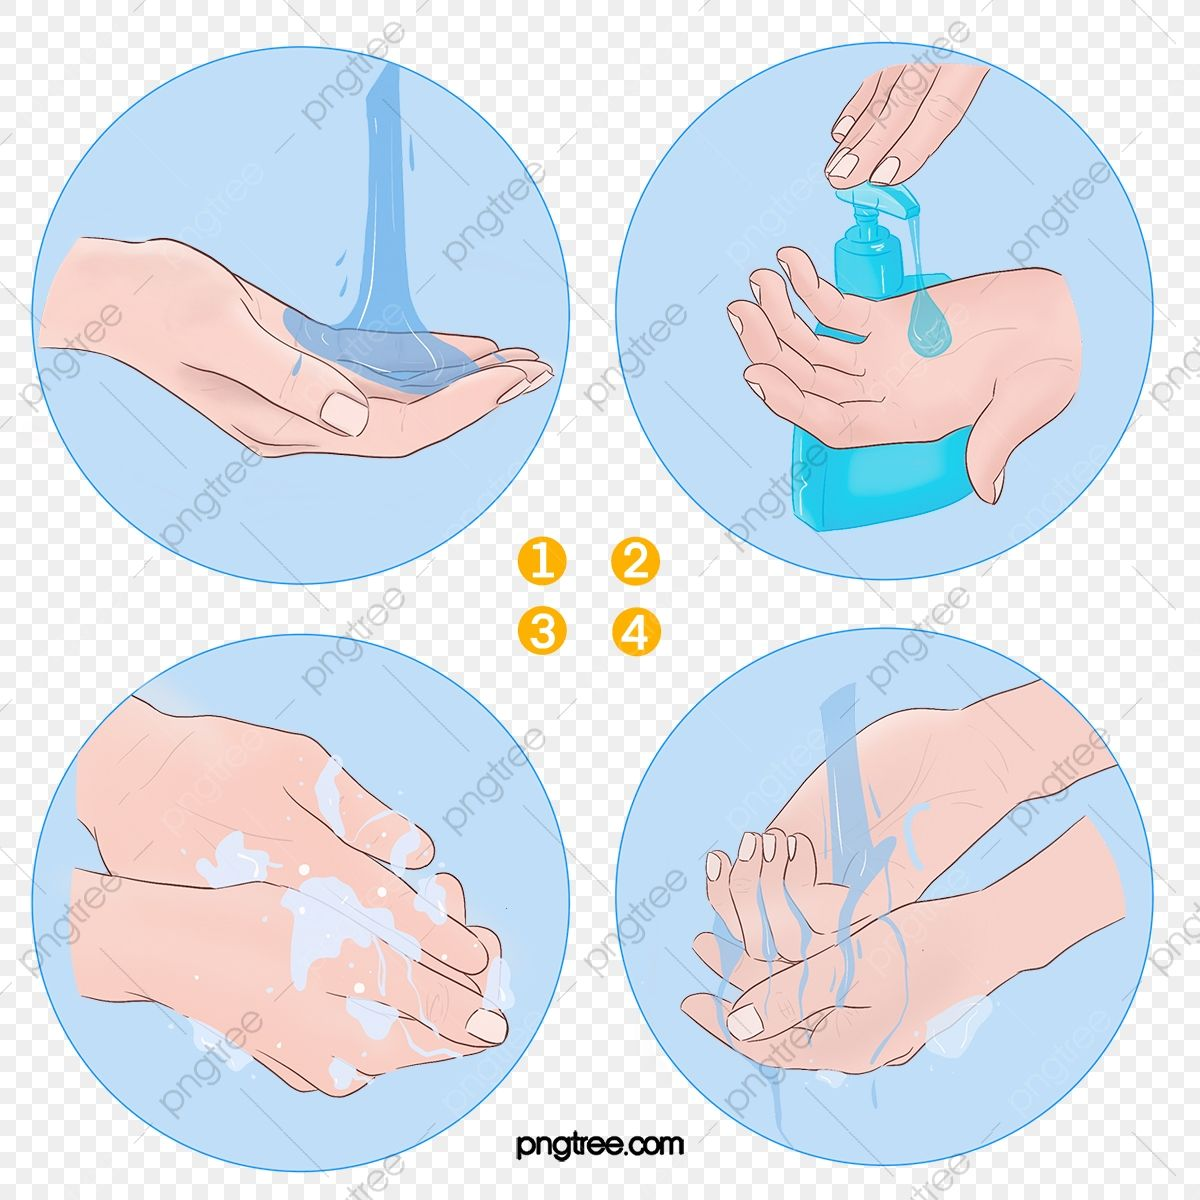 Hand Drawn Washing Steps Hand Clipart Washing Hands Hand Washing Steps Png Transparent Clipart Image And Psd File For Free Download ศ ลปะลายม อ ใบหน า สต กเกอร